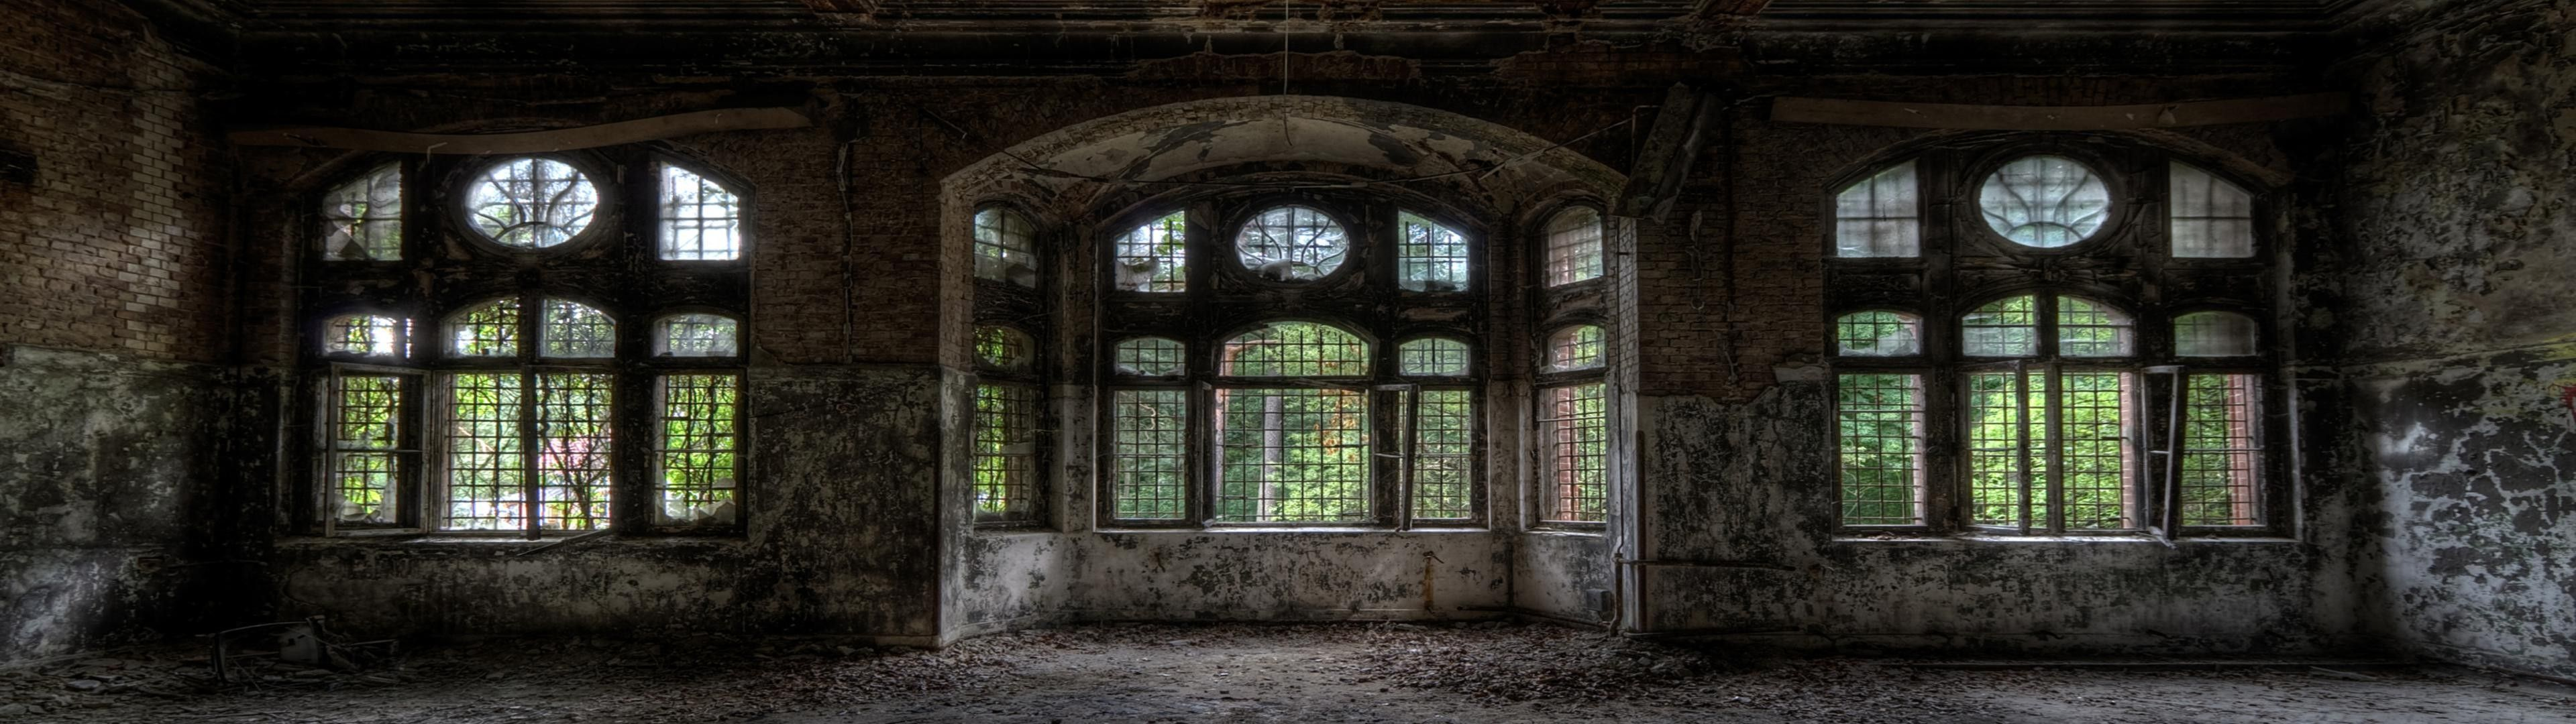 Pin by april chang on dual monitor wallpaper 3840x1080 pinterest monitor and wallpaper - The beauty of an abandoned house the art behind the crisis ...